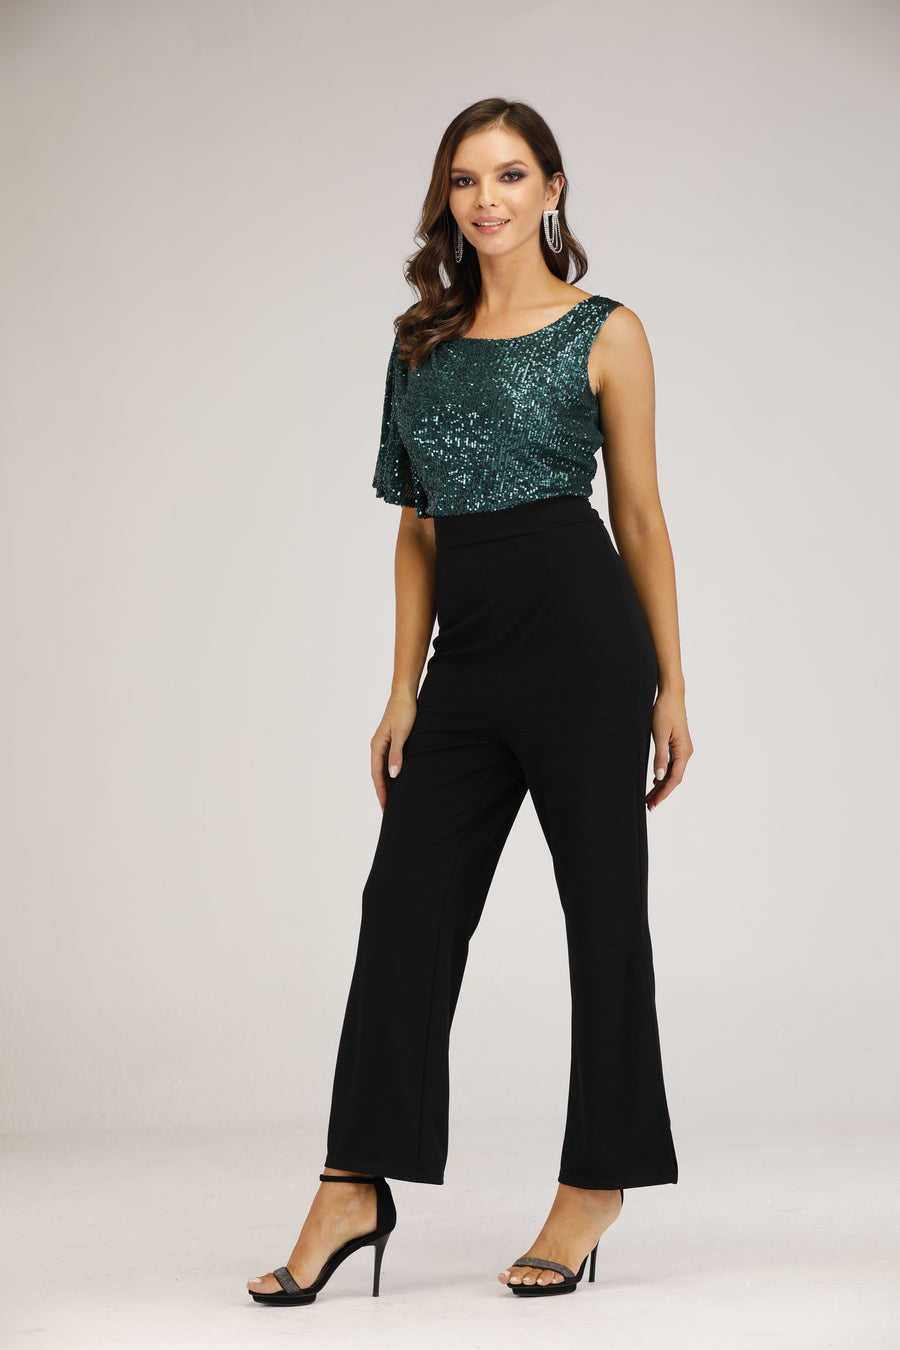 Mantra Pakistan Sequins body Jumpsuit | DRESS